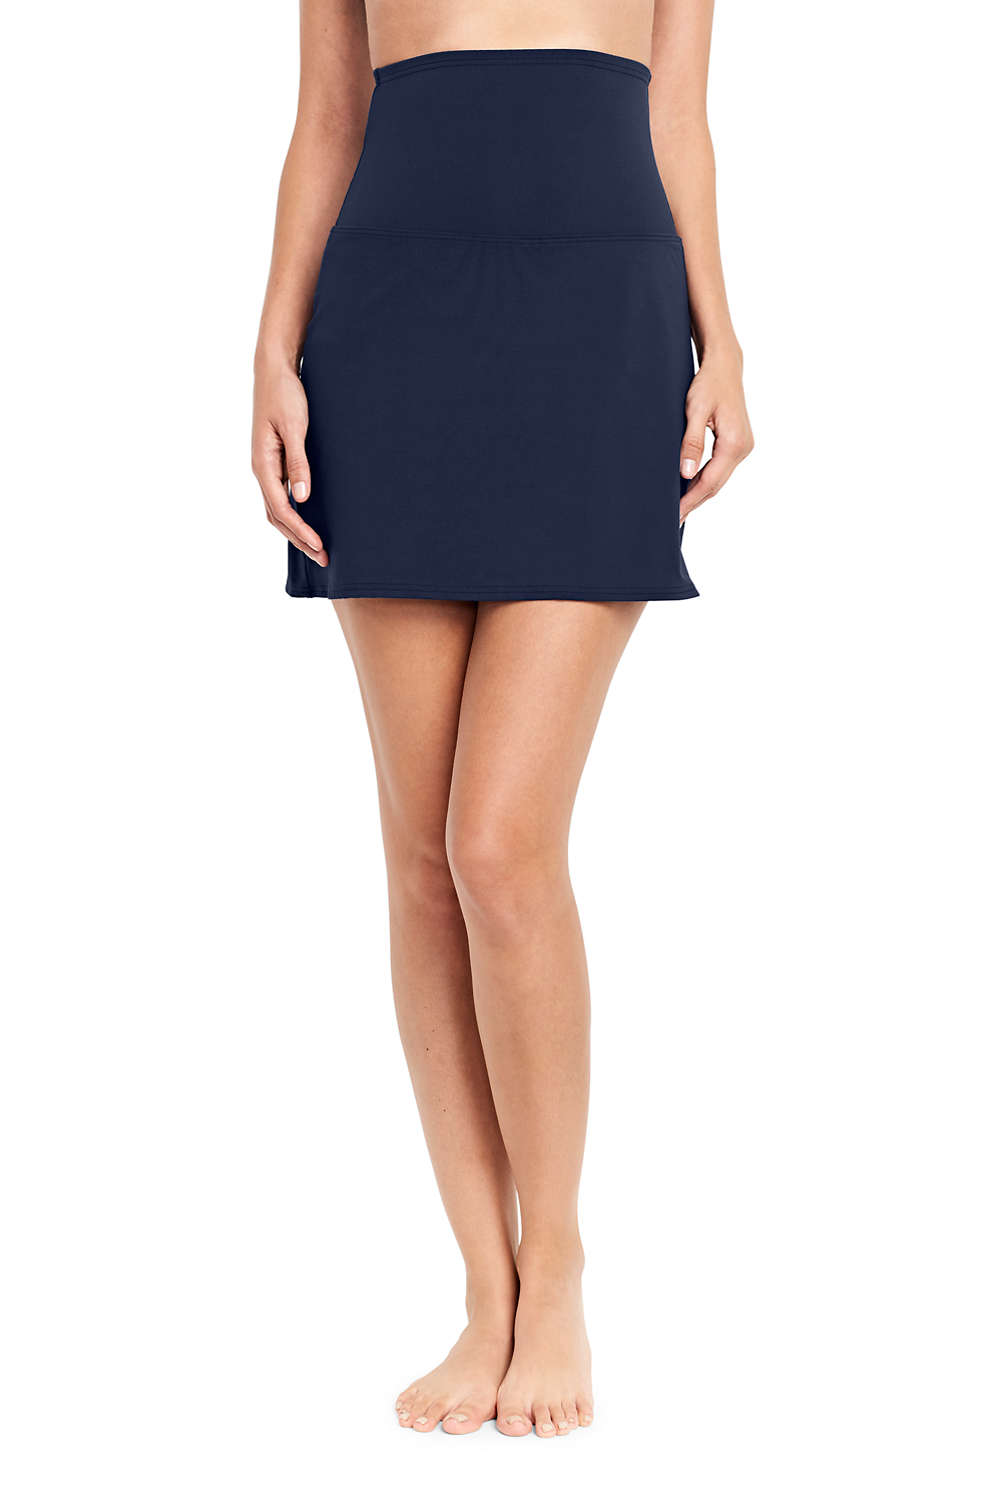 872654c808c Women's Ultra High Waisted Tummy Control Swim Skirt SwimMini from Lands' End